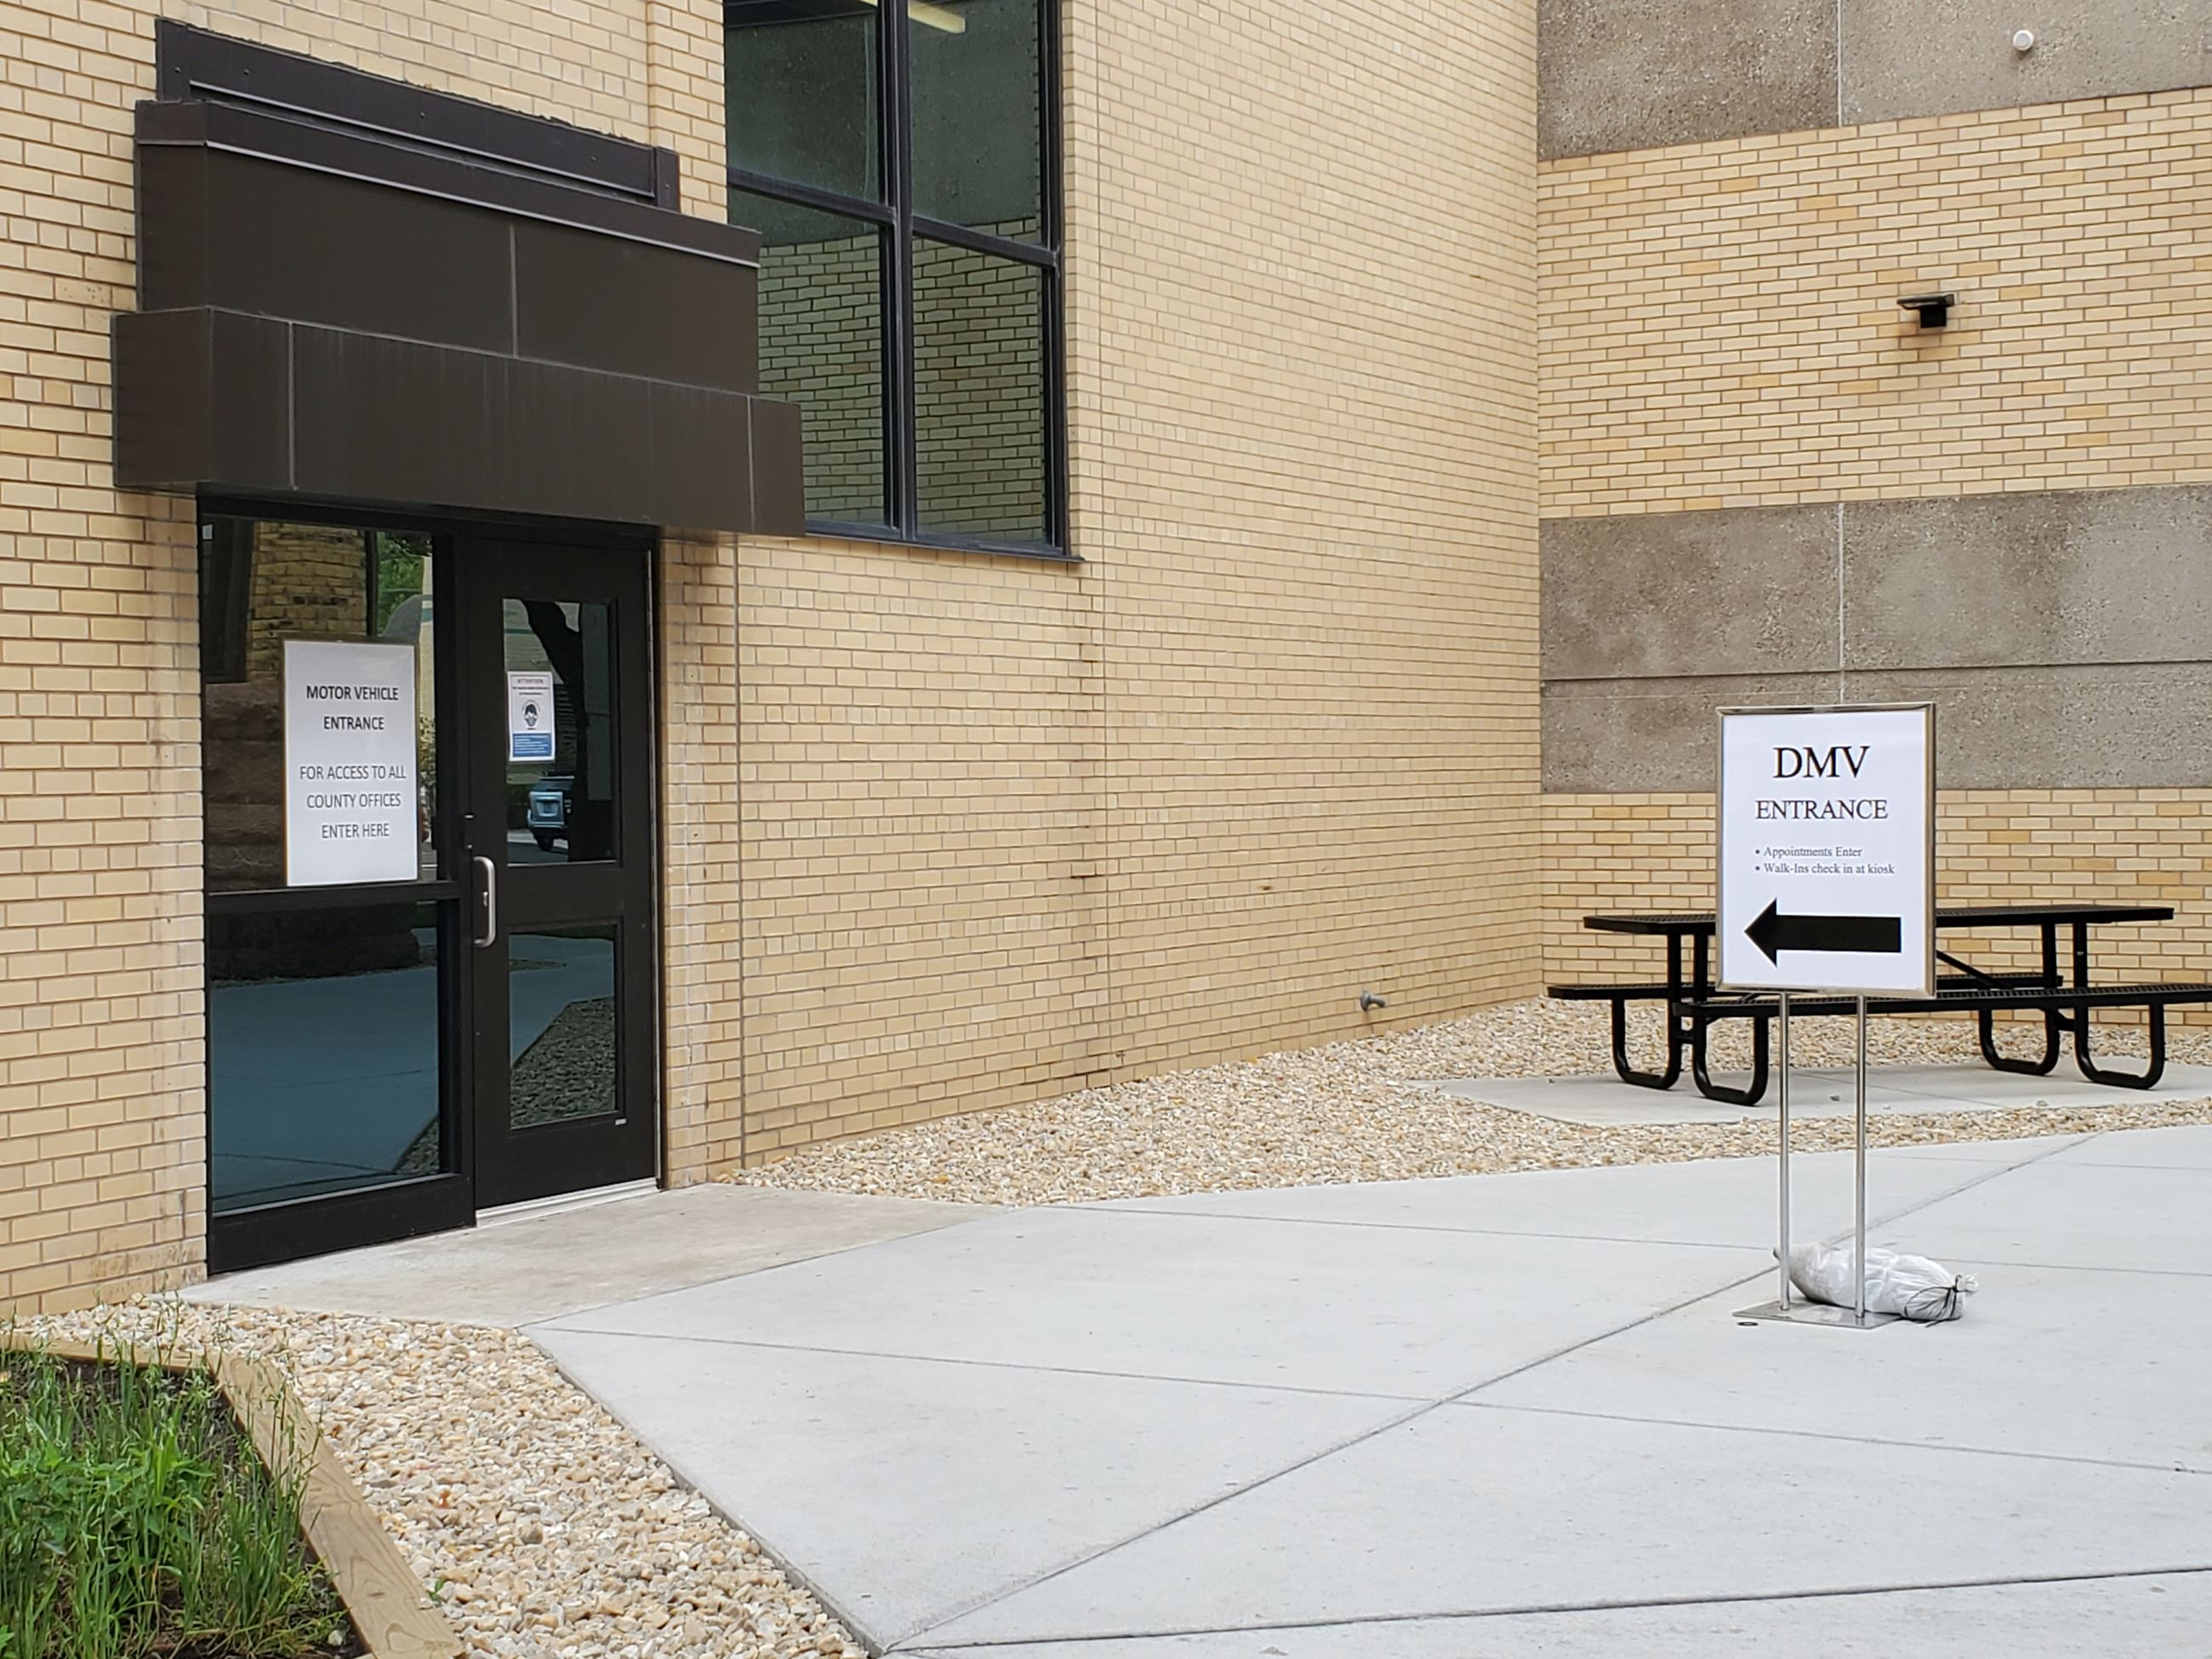 DMV Entrance Door east view